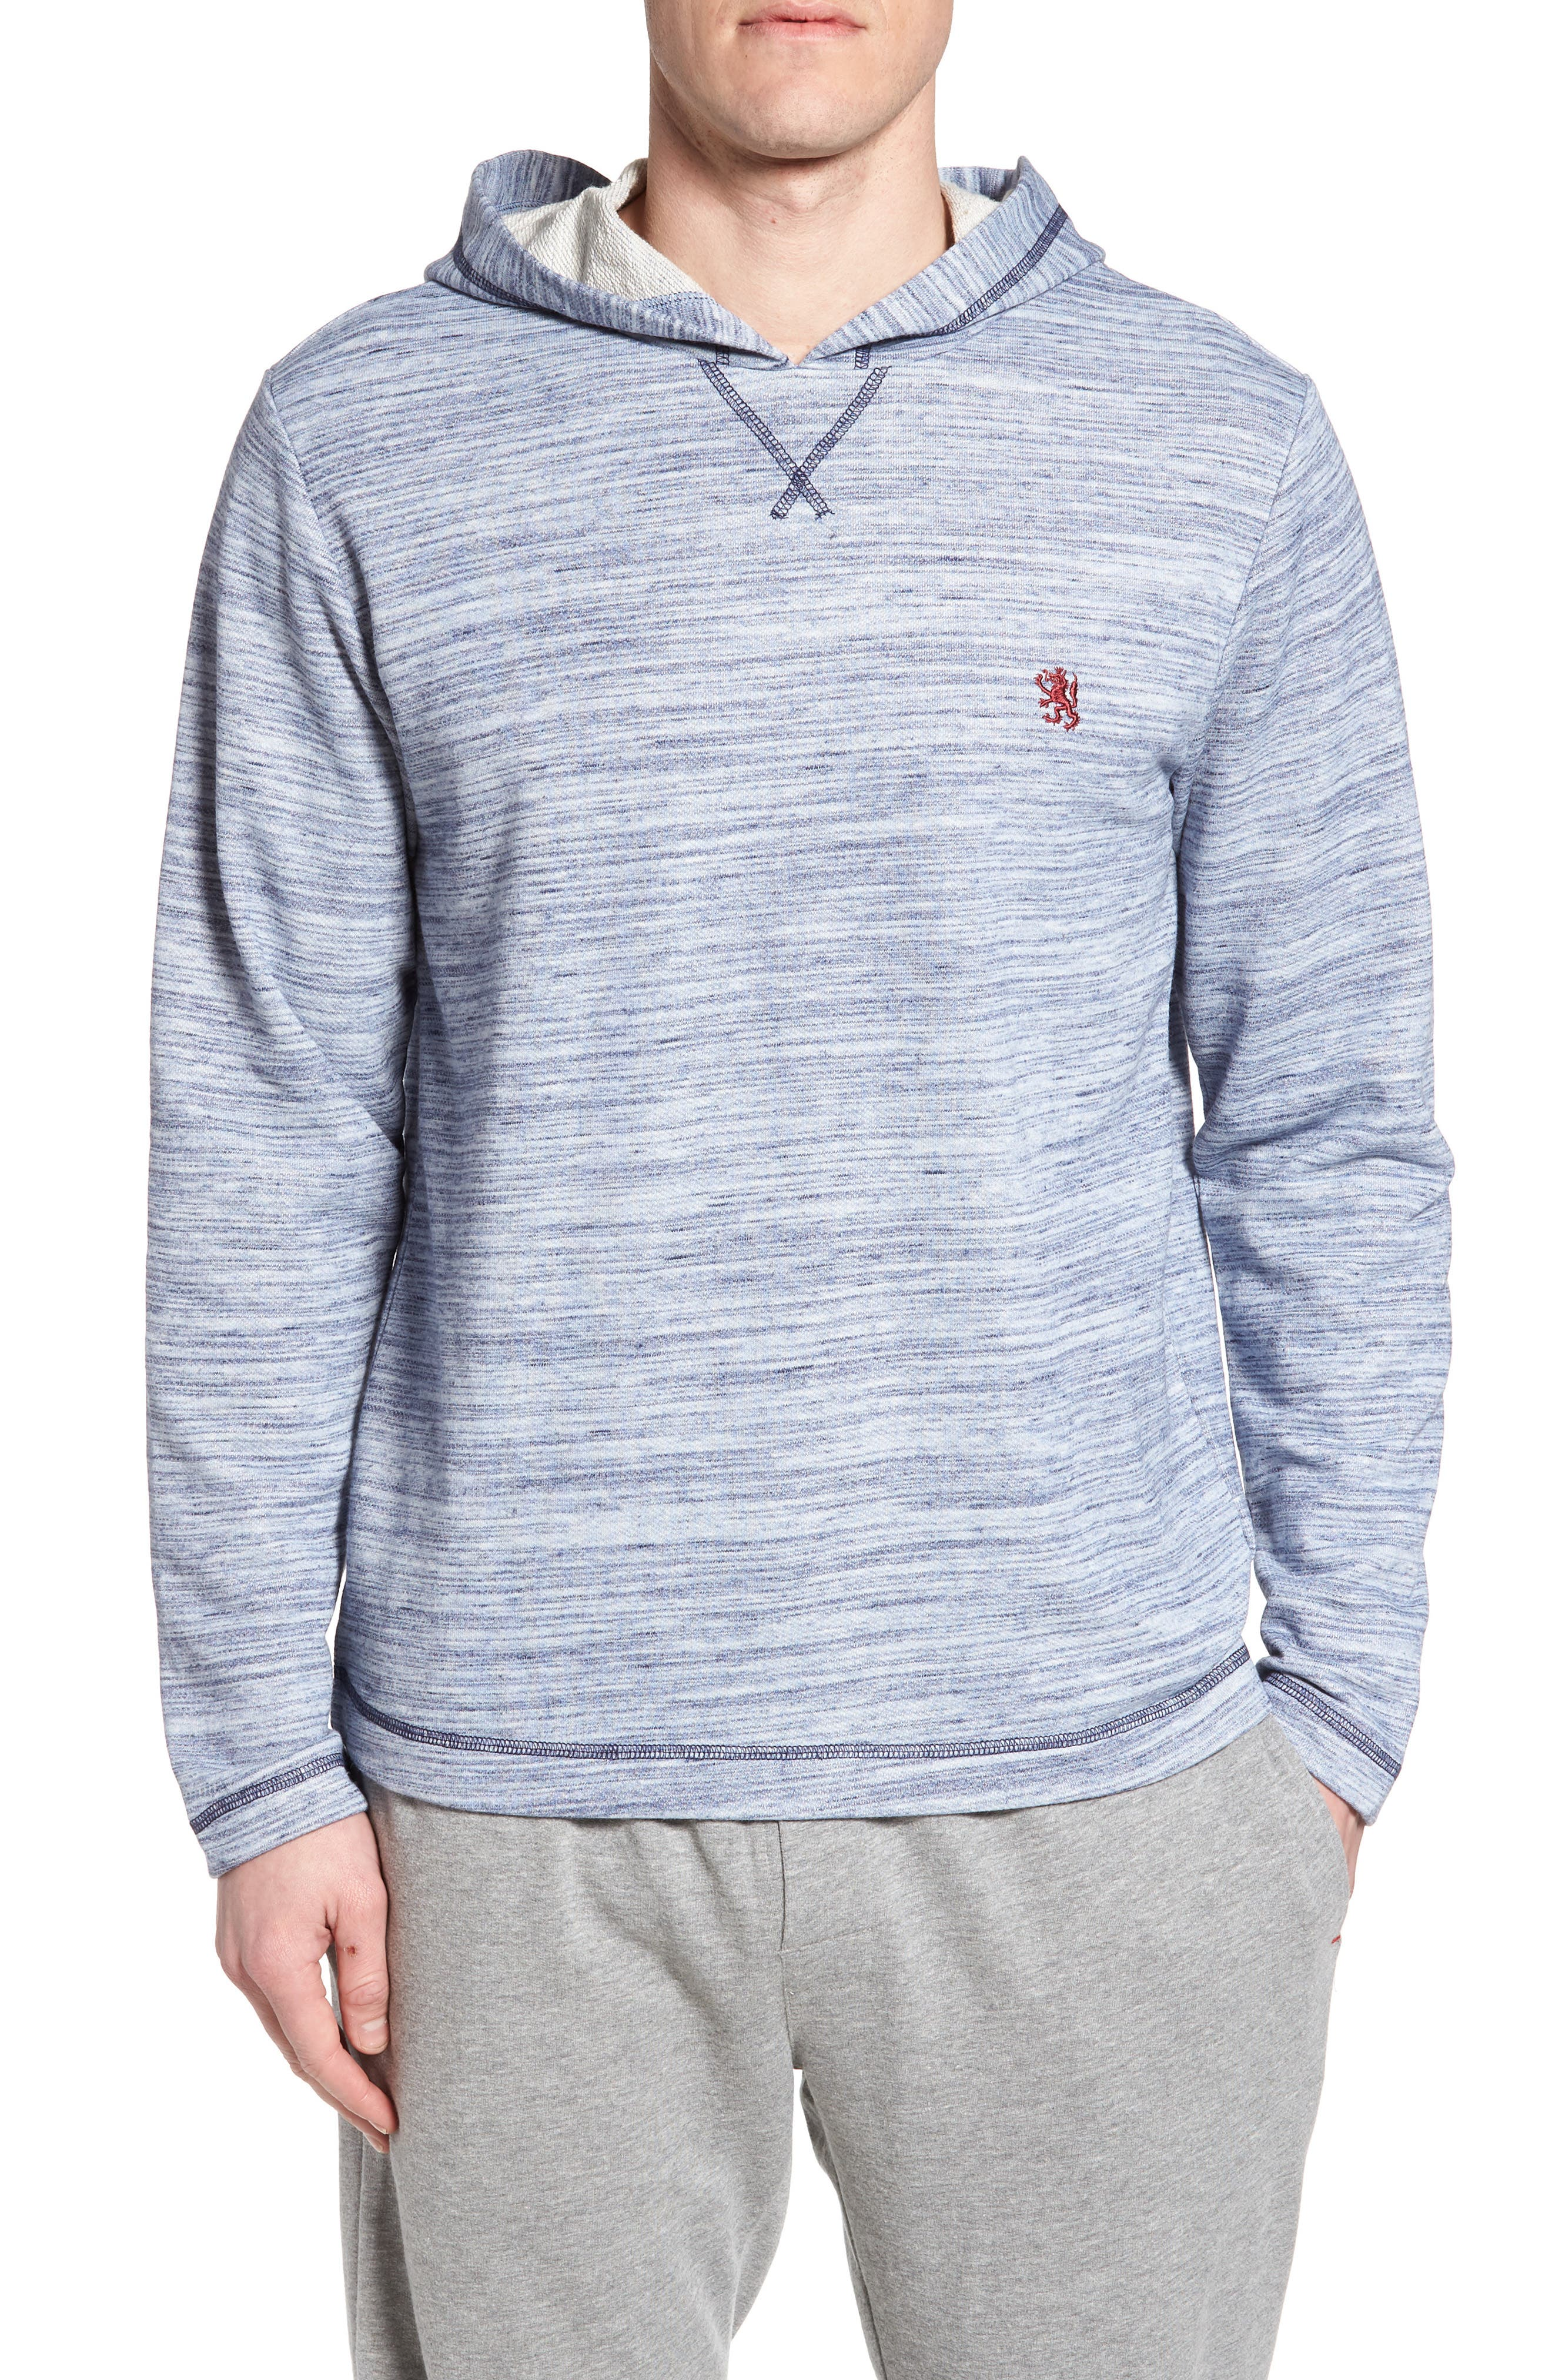 Swept in Waves Hoodie,                             Main thumbnail 1, color,                             Alfresco French Terry